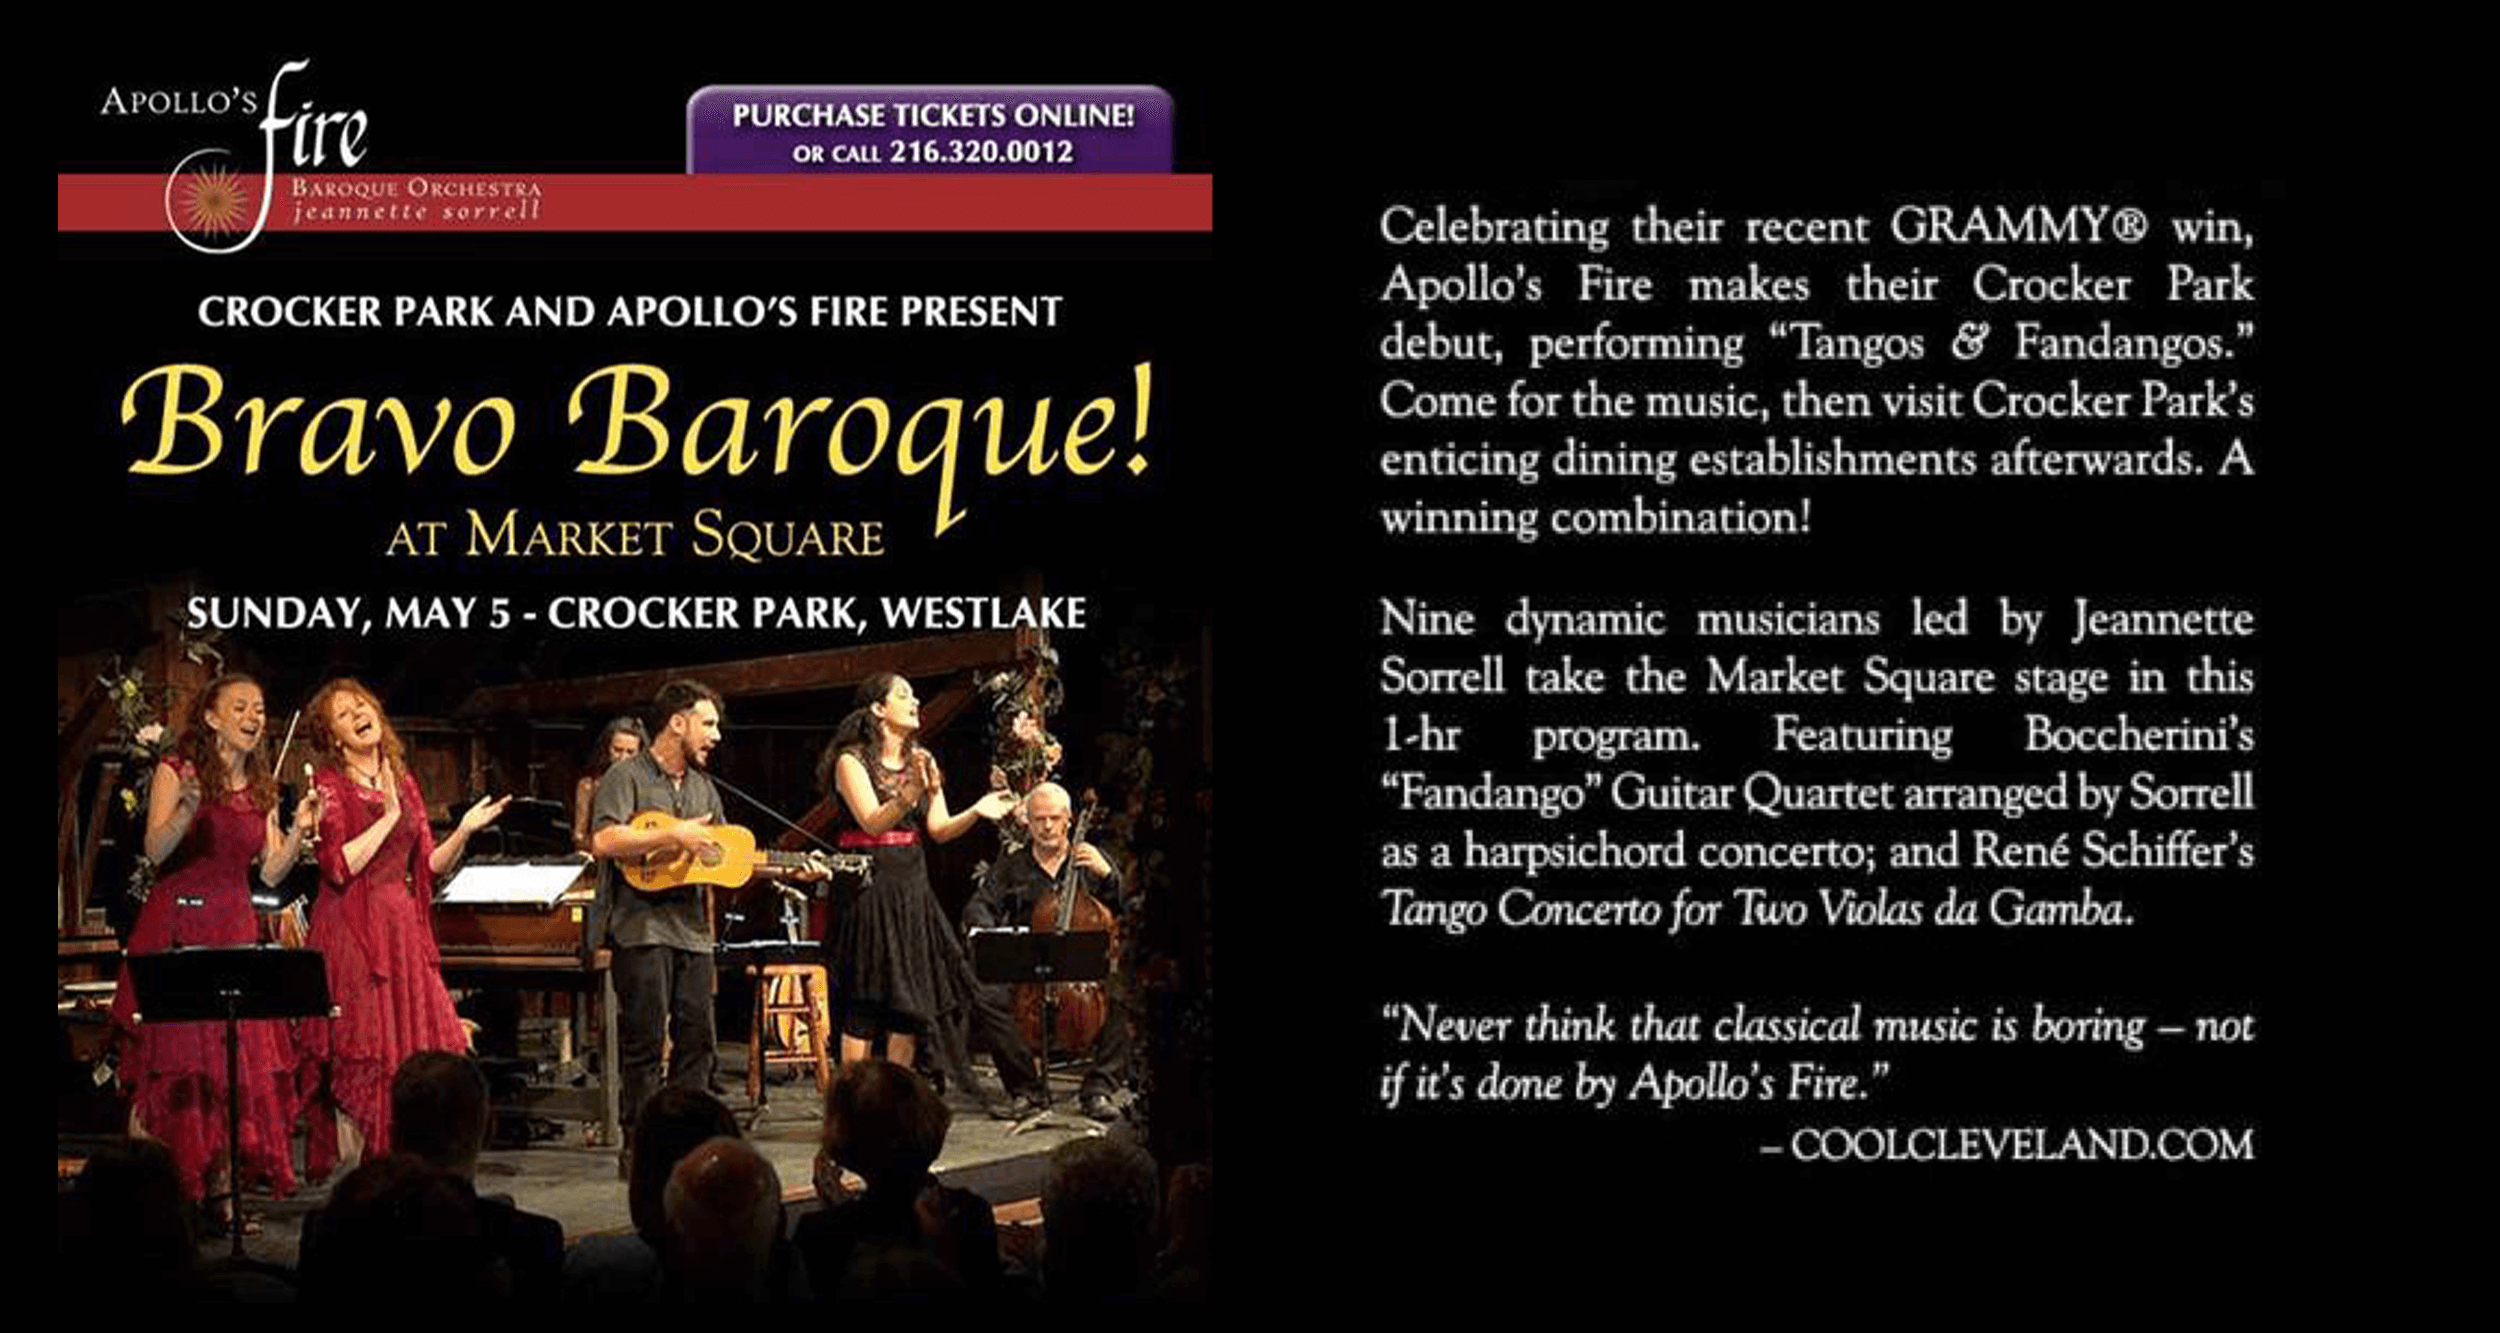 Apollo's Fire The Cleveland Baroque Orchestra